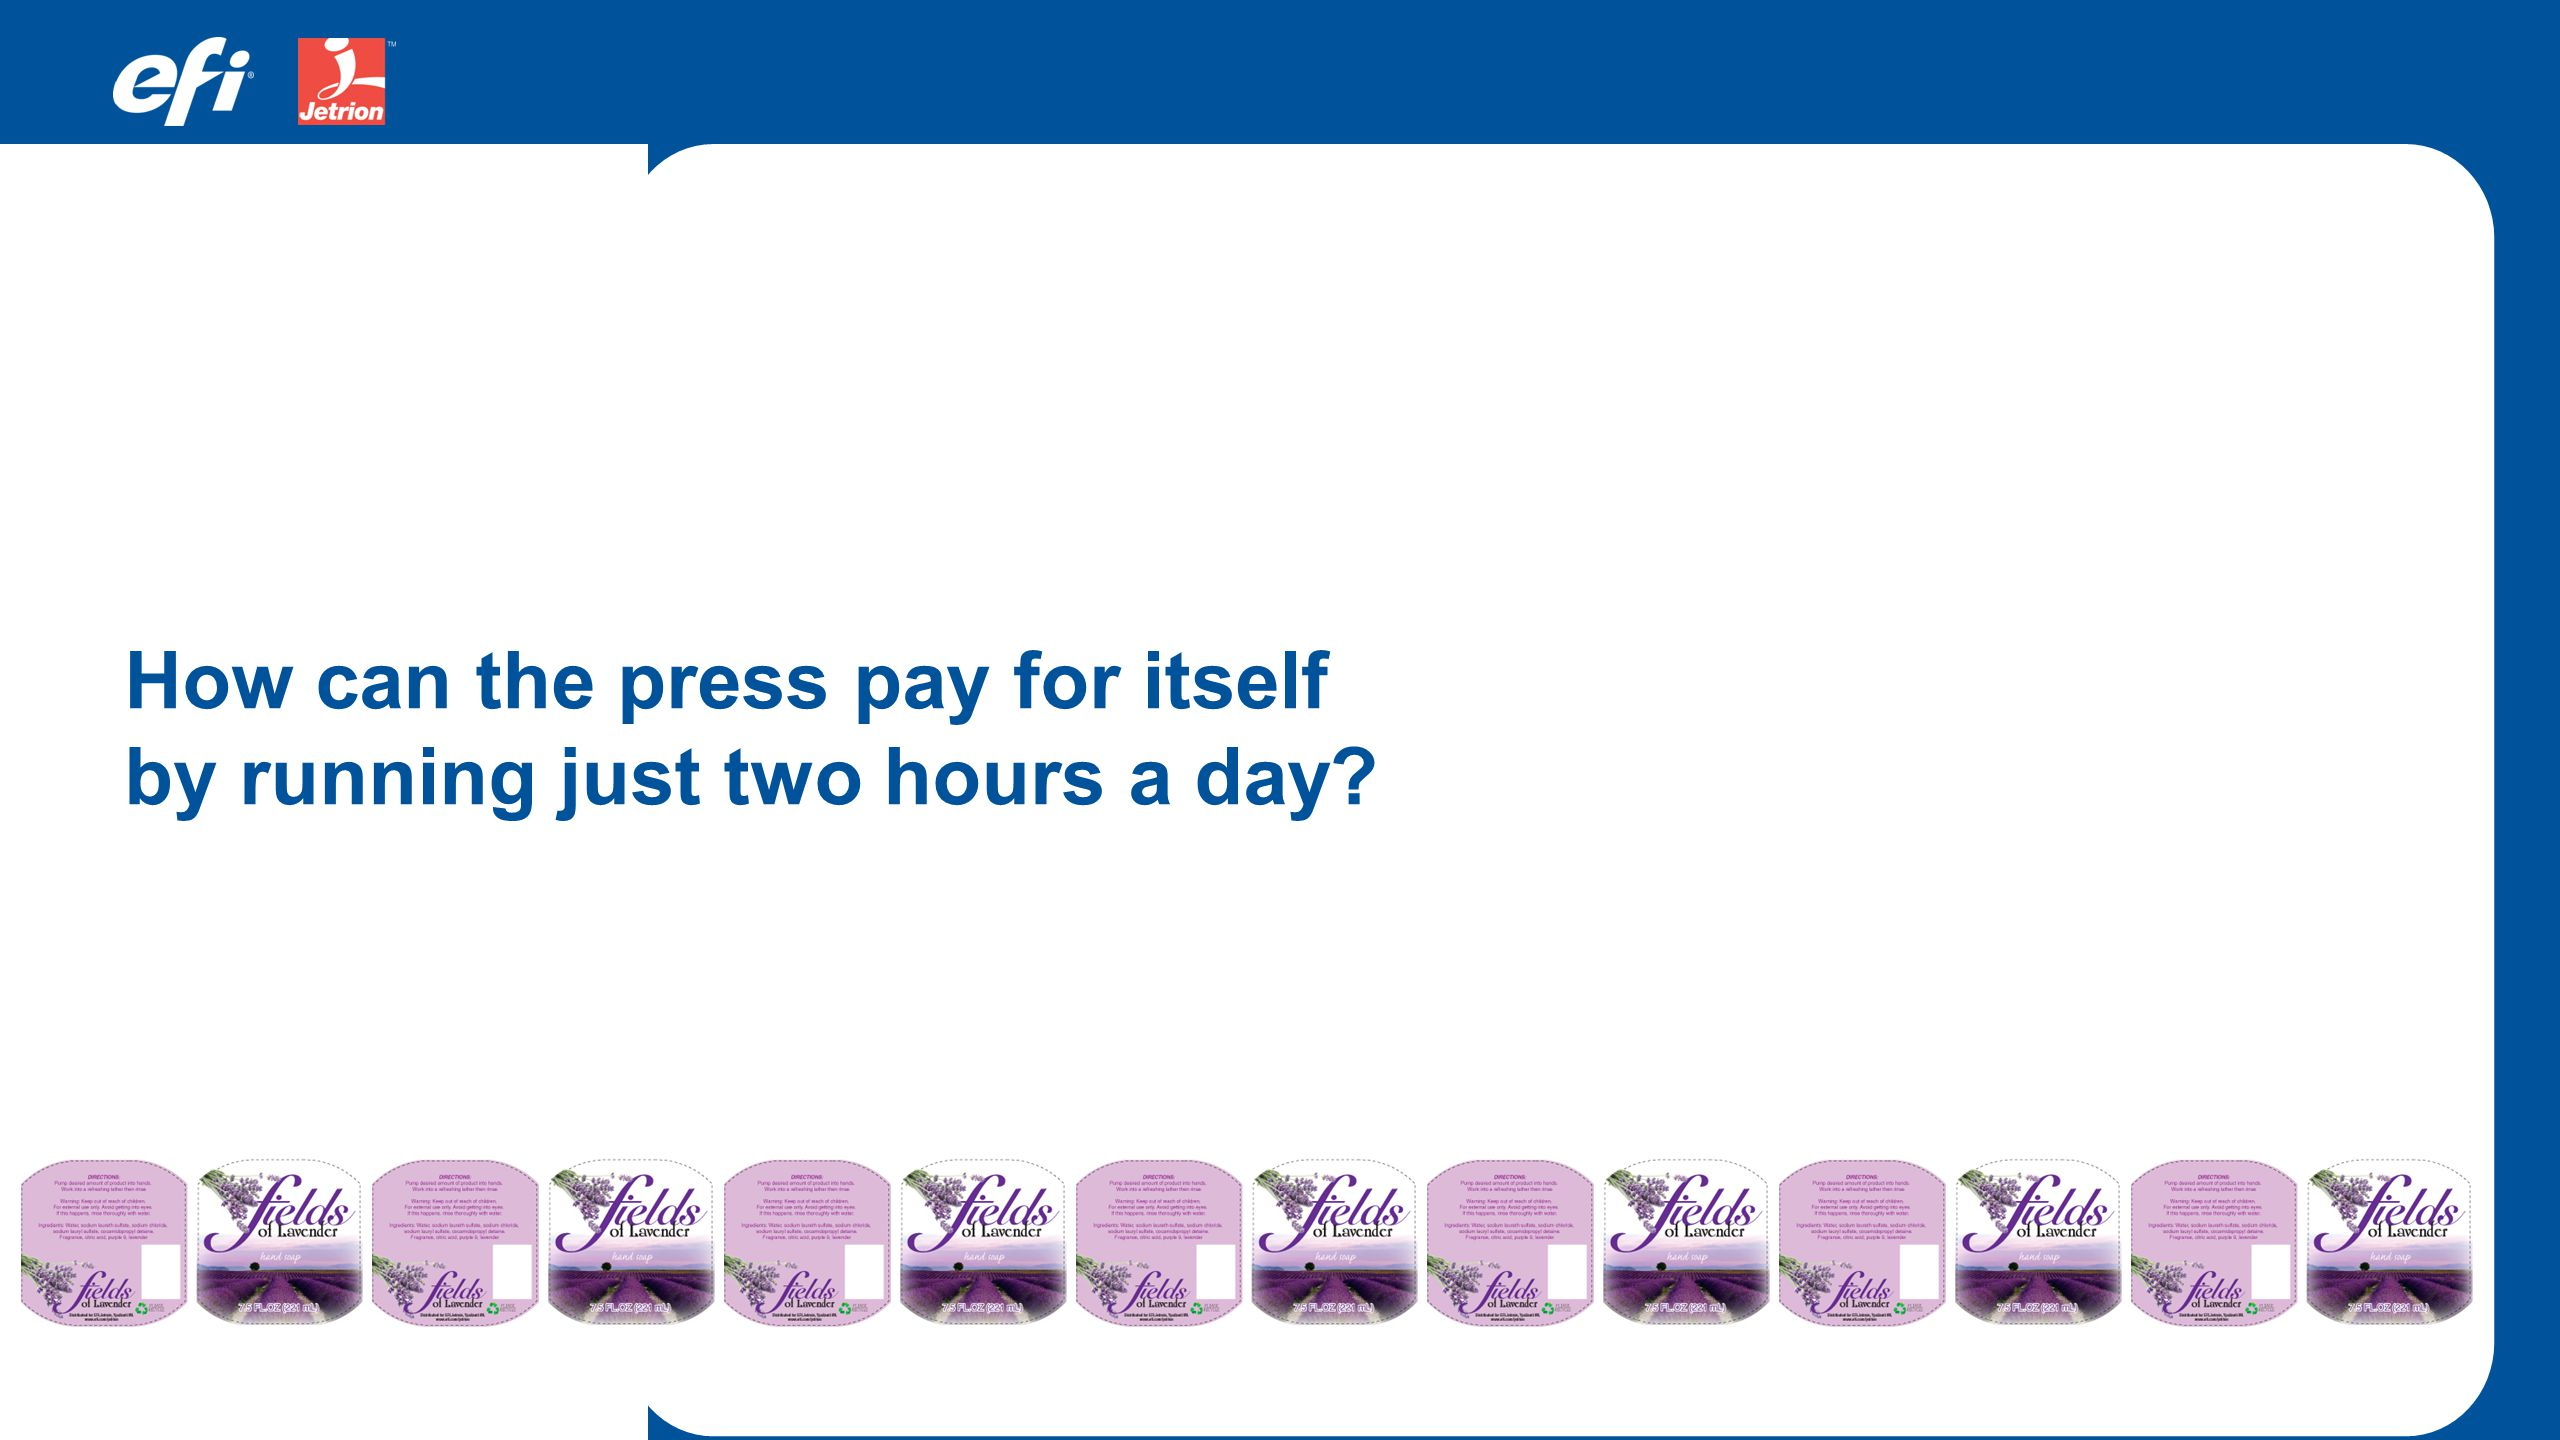 How can the press pay for itself by running just two hours a day?